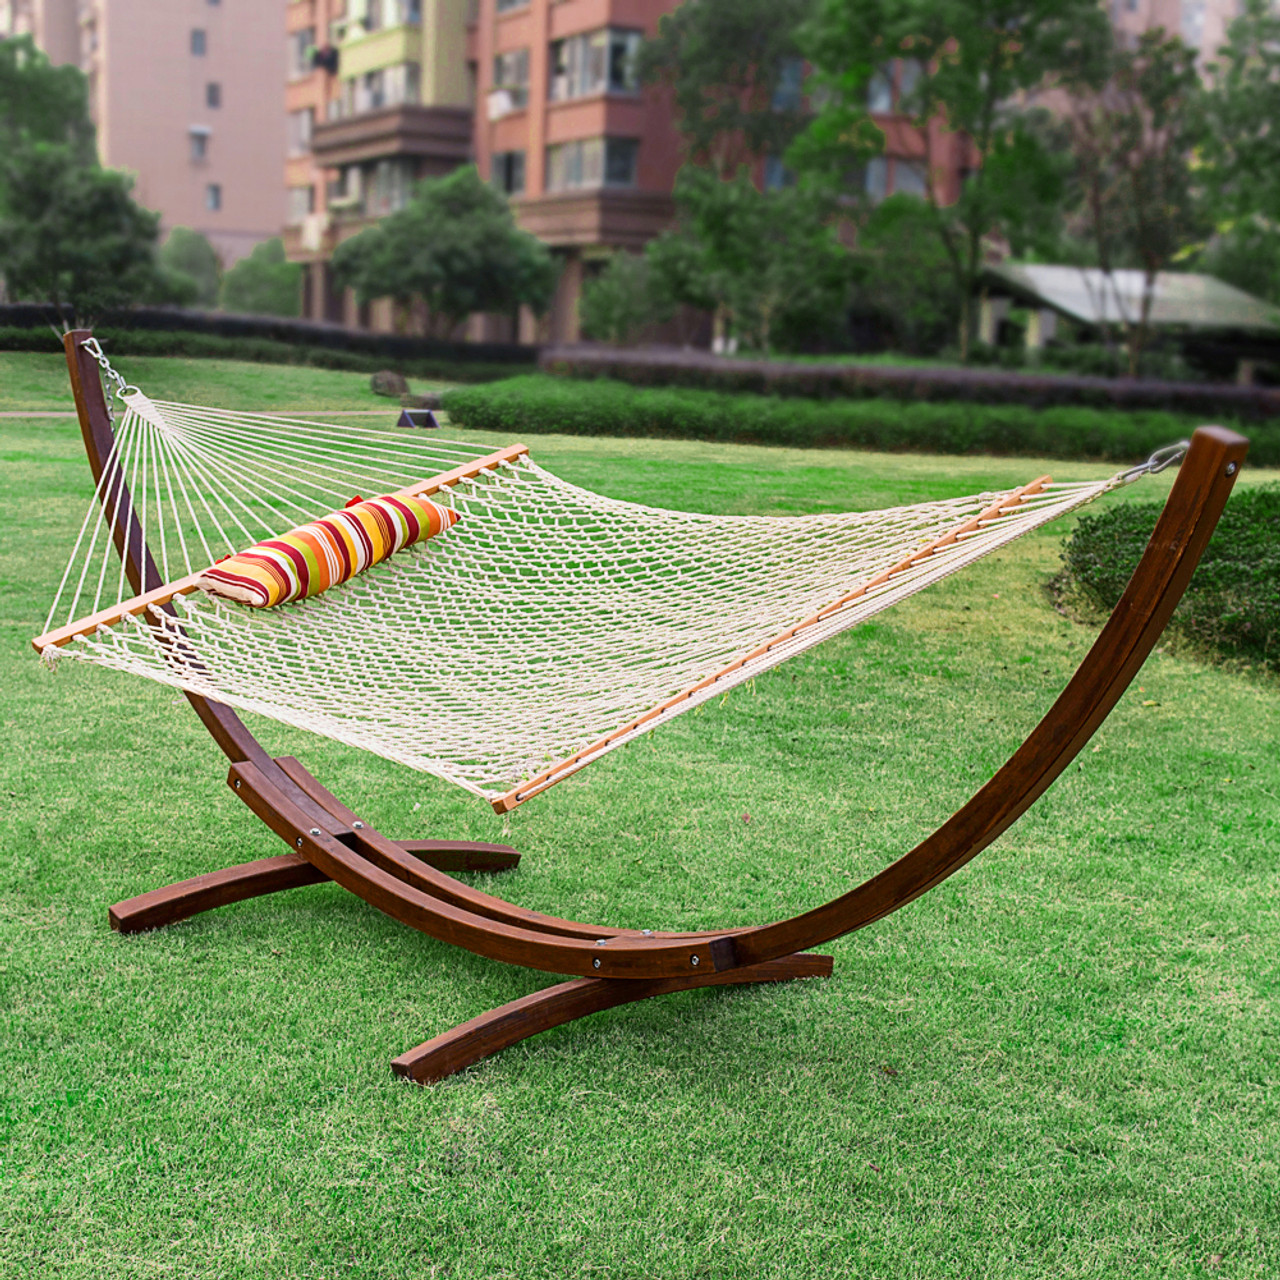 lazy daze hammocks 12feet wood arc hammock stand and hammock  bo cotton rope hammock with pillow and     daze hammocks 12feet wood arc hammock stand and hammock  bo      rh   lazydazehammocks